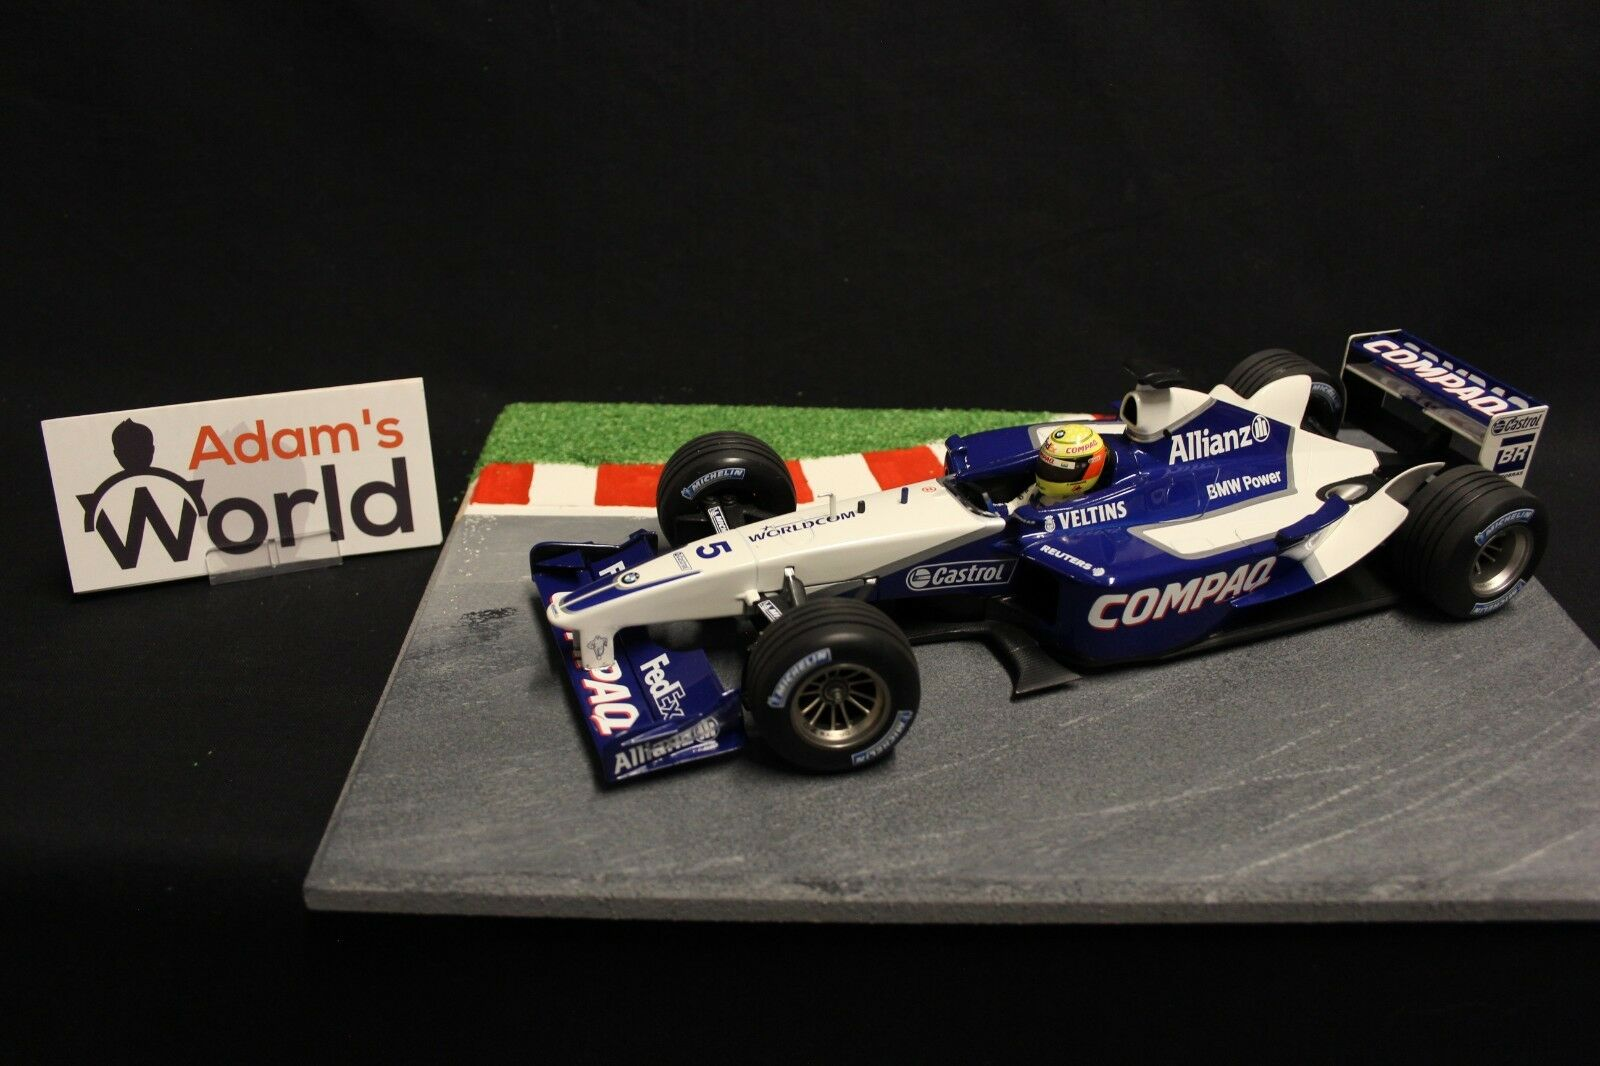 Minichamps Williams BMW  FW24 2002 1 18  5 Ralf Schumacher (GER) (F1NB)  excellent prix